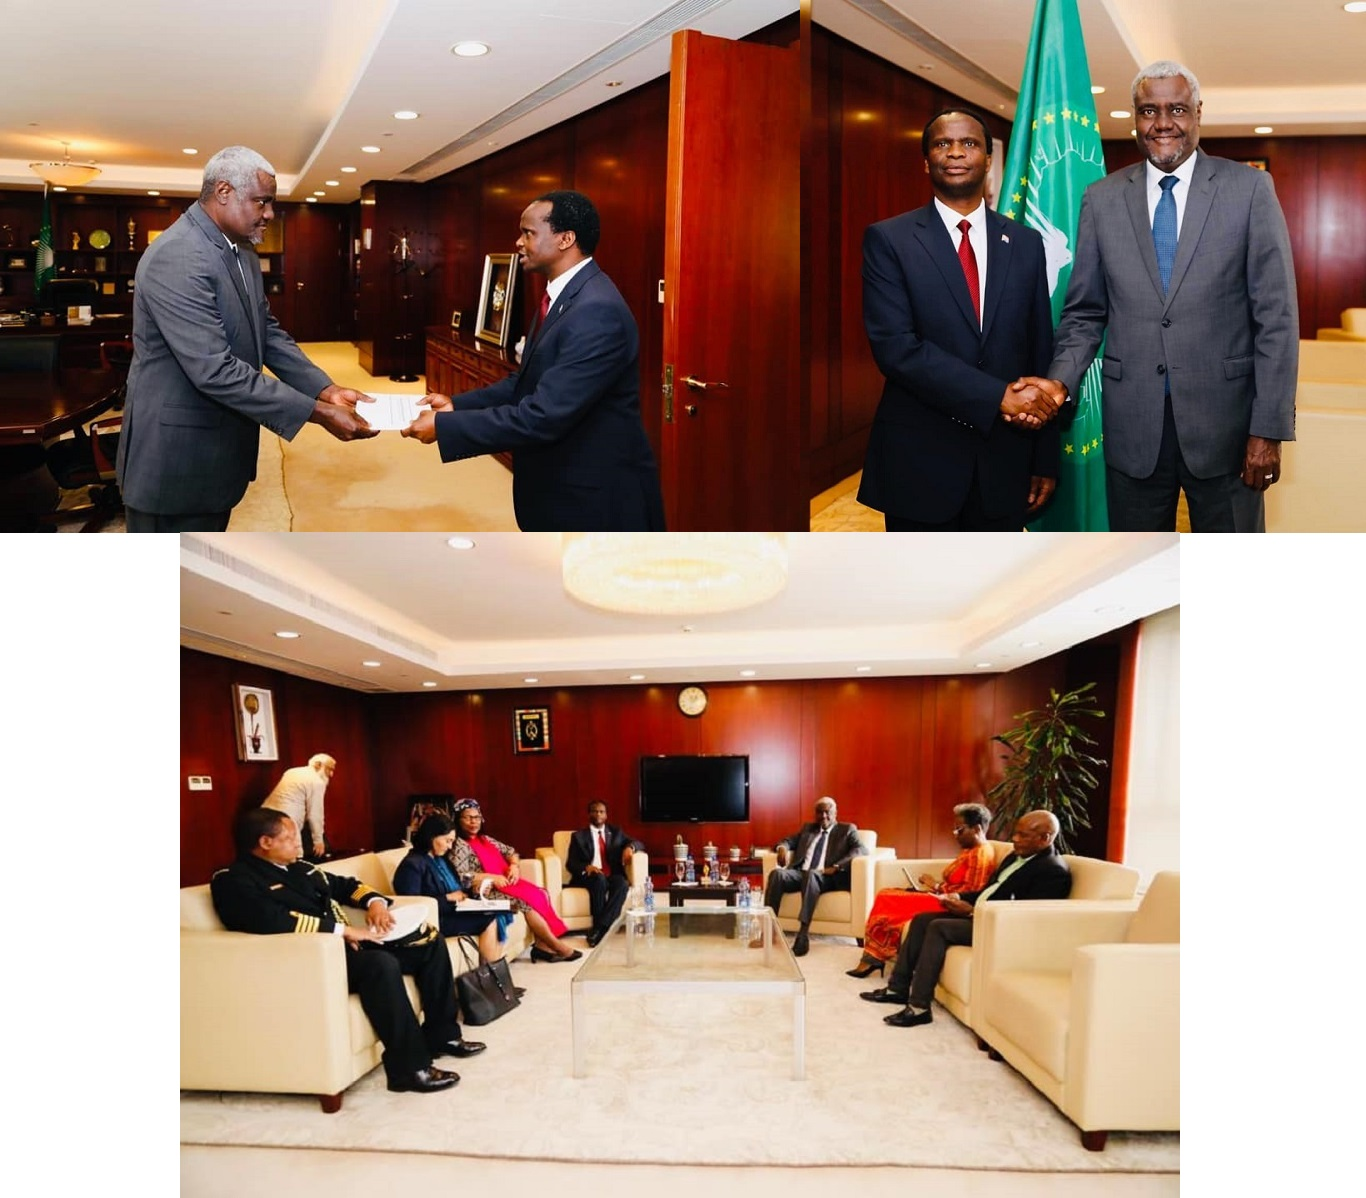 H.E Ambassador Edward Xolisa Makaya Presents Letters of Credence to the Chairperson of the African Union Commission H.E Mr Moussa Faki Mahamat